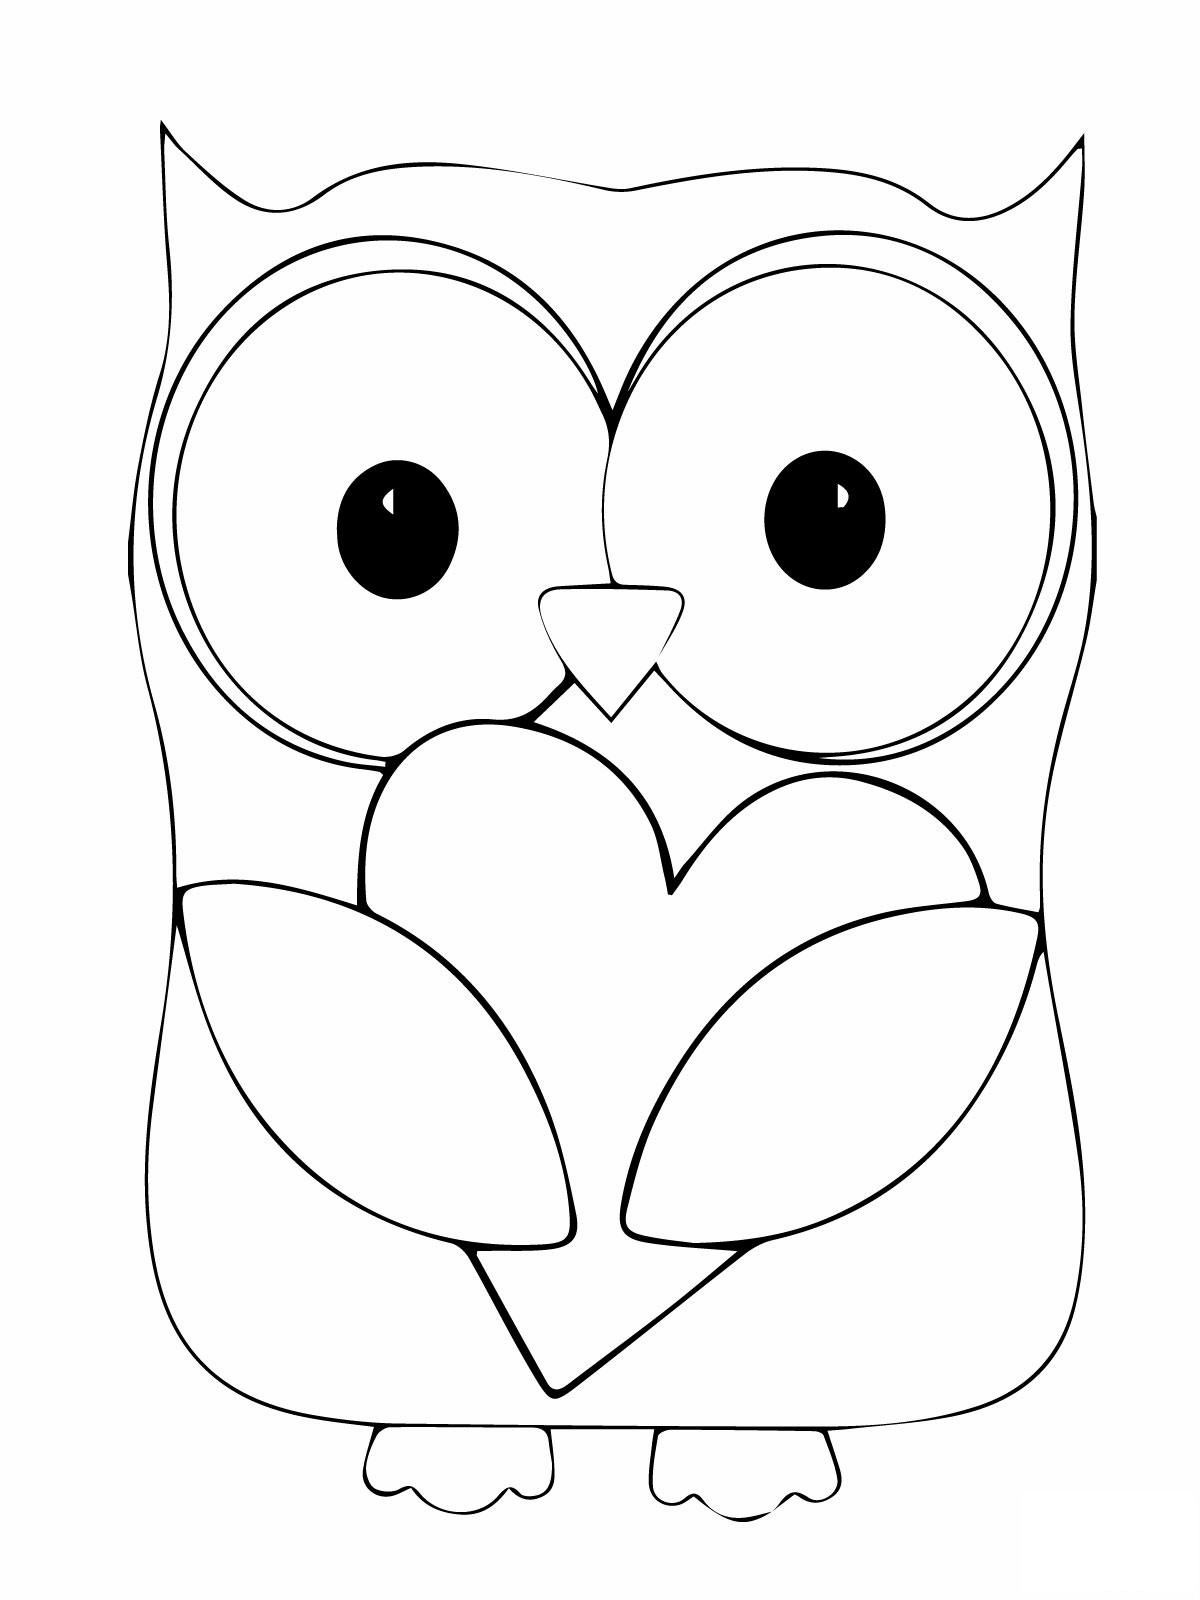 coloring picture of an owl free easy to print owl coloring pages tulamama an coloring of picture owl